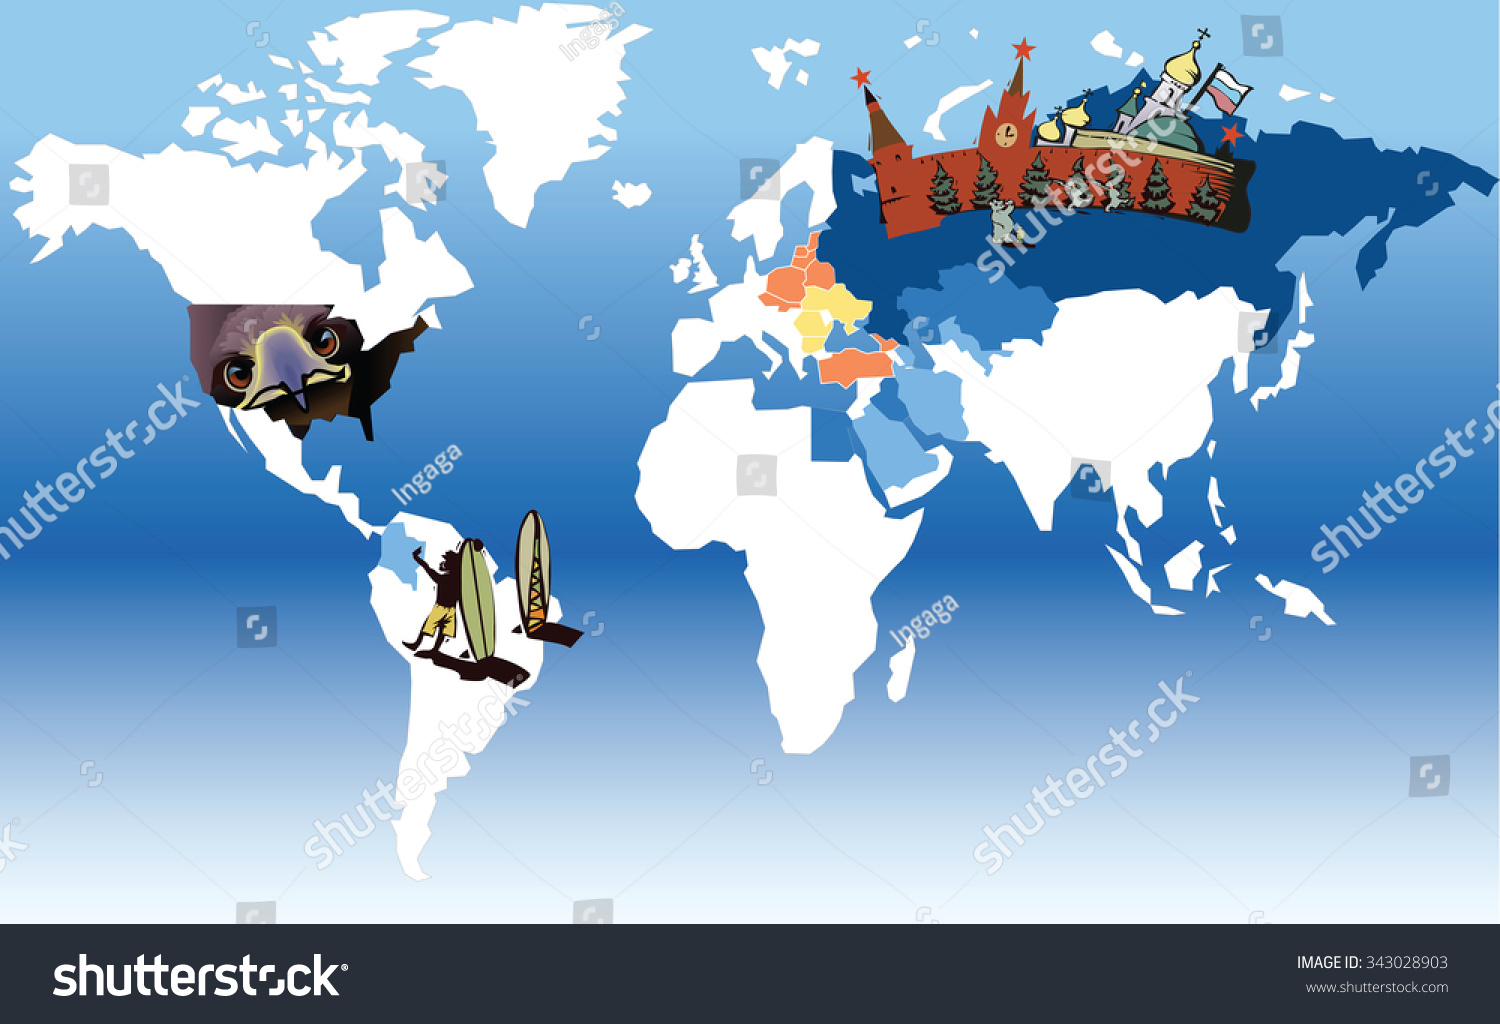 Russia World Map Hawaii Islands Map Map Of Eau Claire Wi - Russia on world map